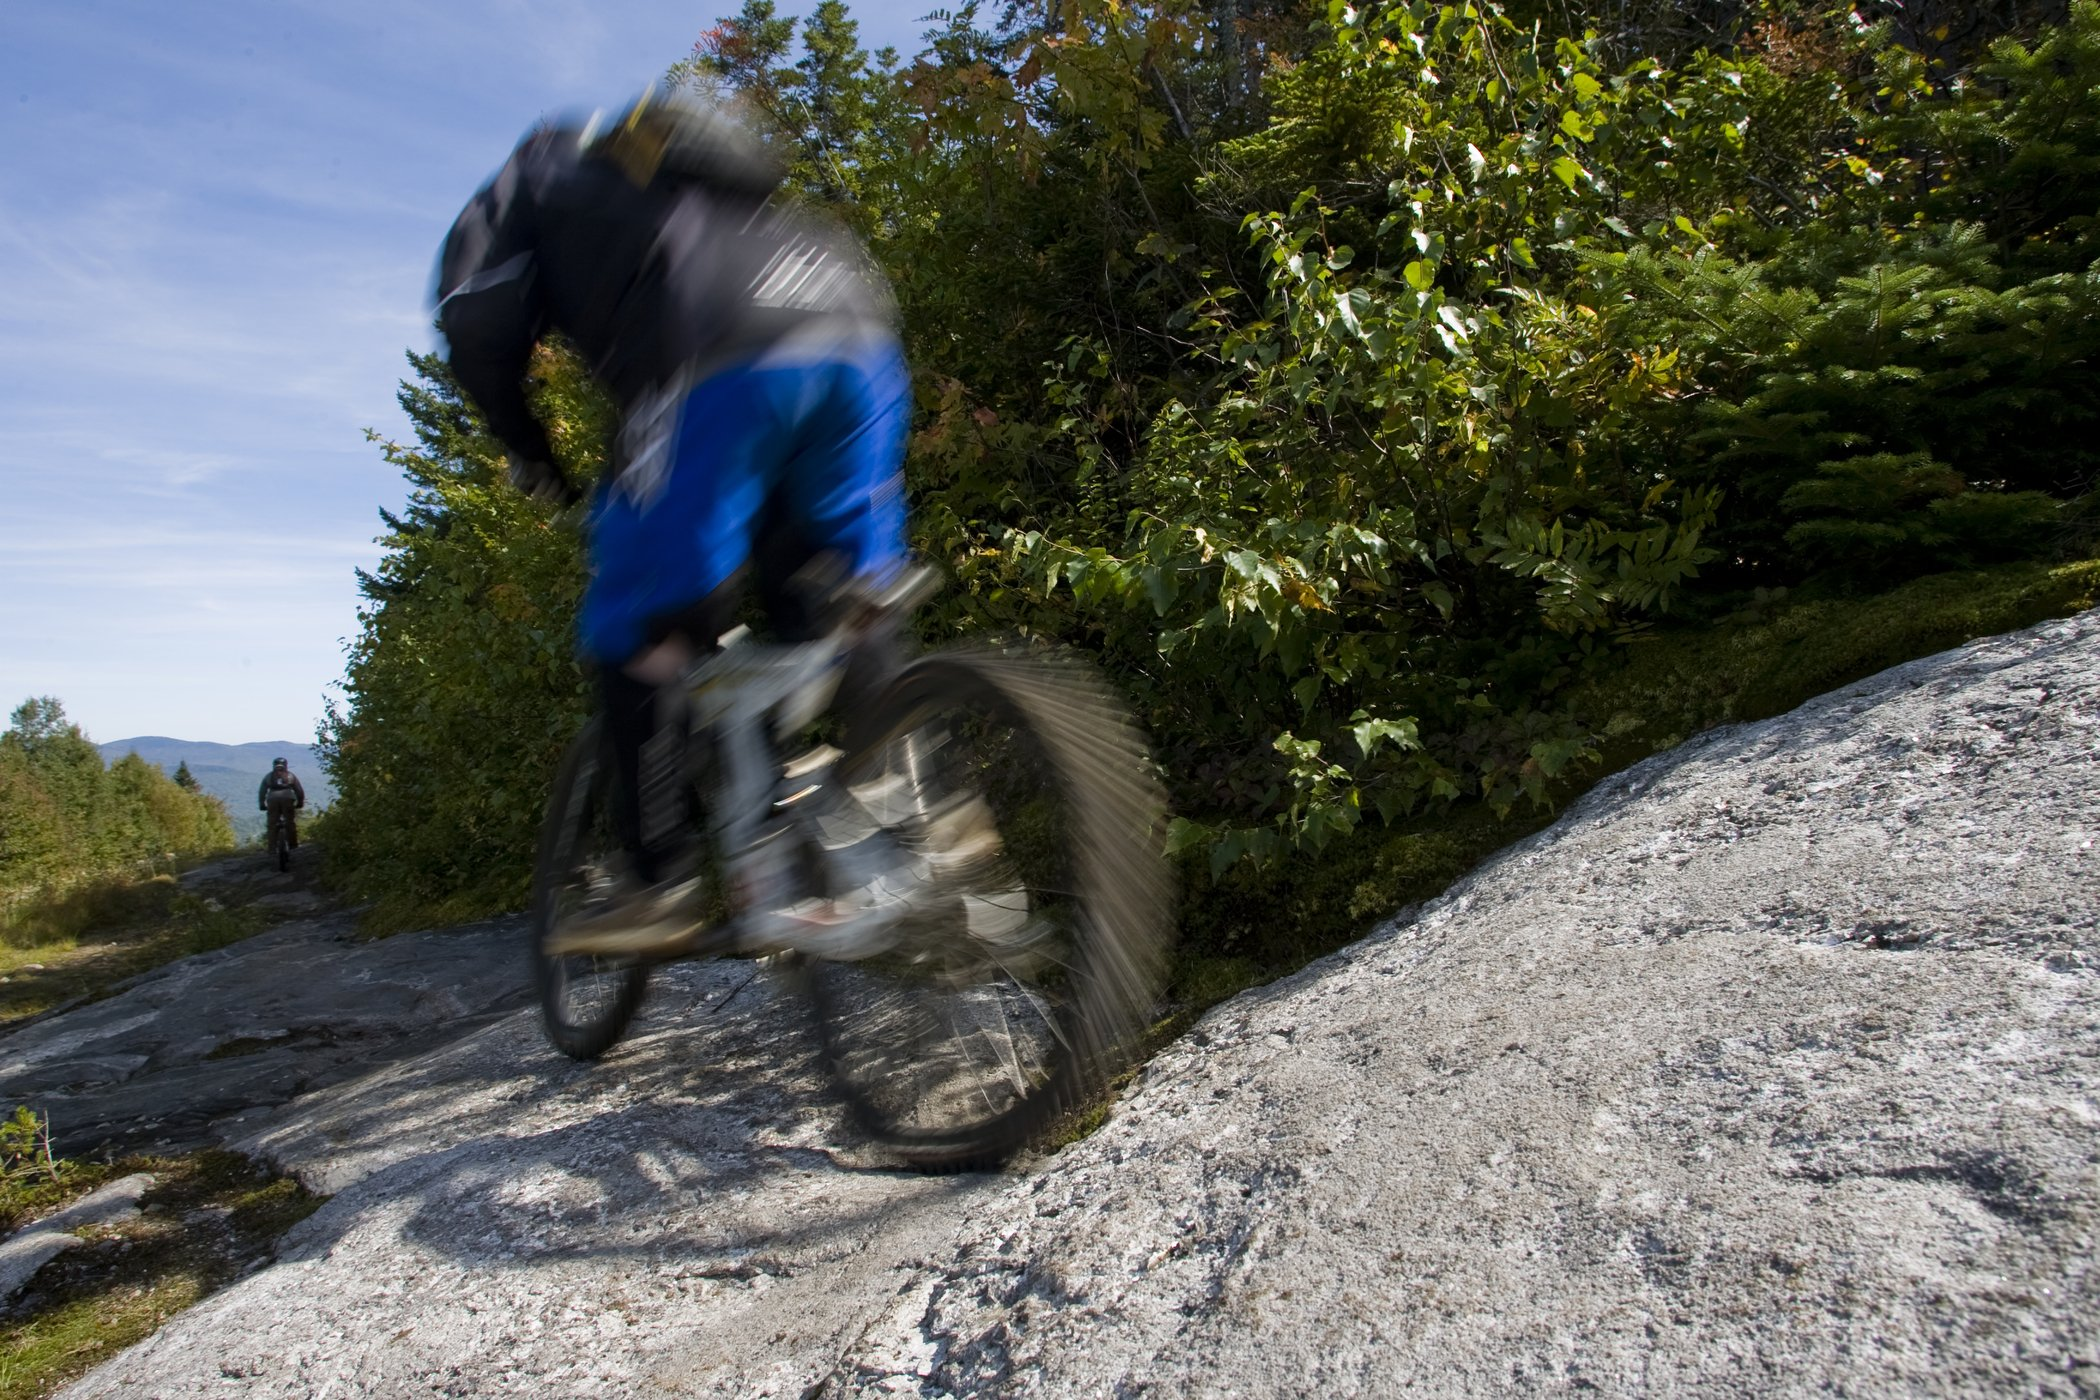 Sunday River Mountain Bike Park is home to 20 miles of lift-serviced downhill terrain and a new Mountain Bike School for those riders looking to elevate their skills.